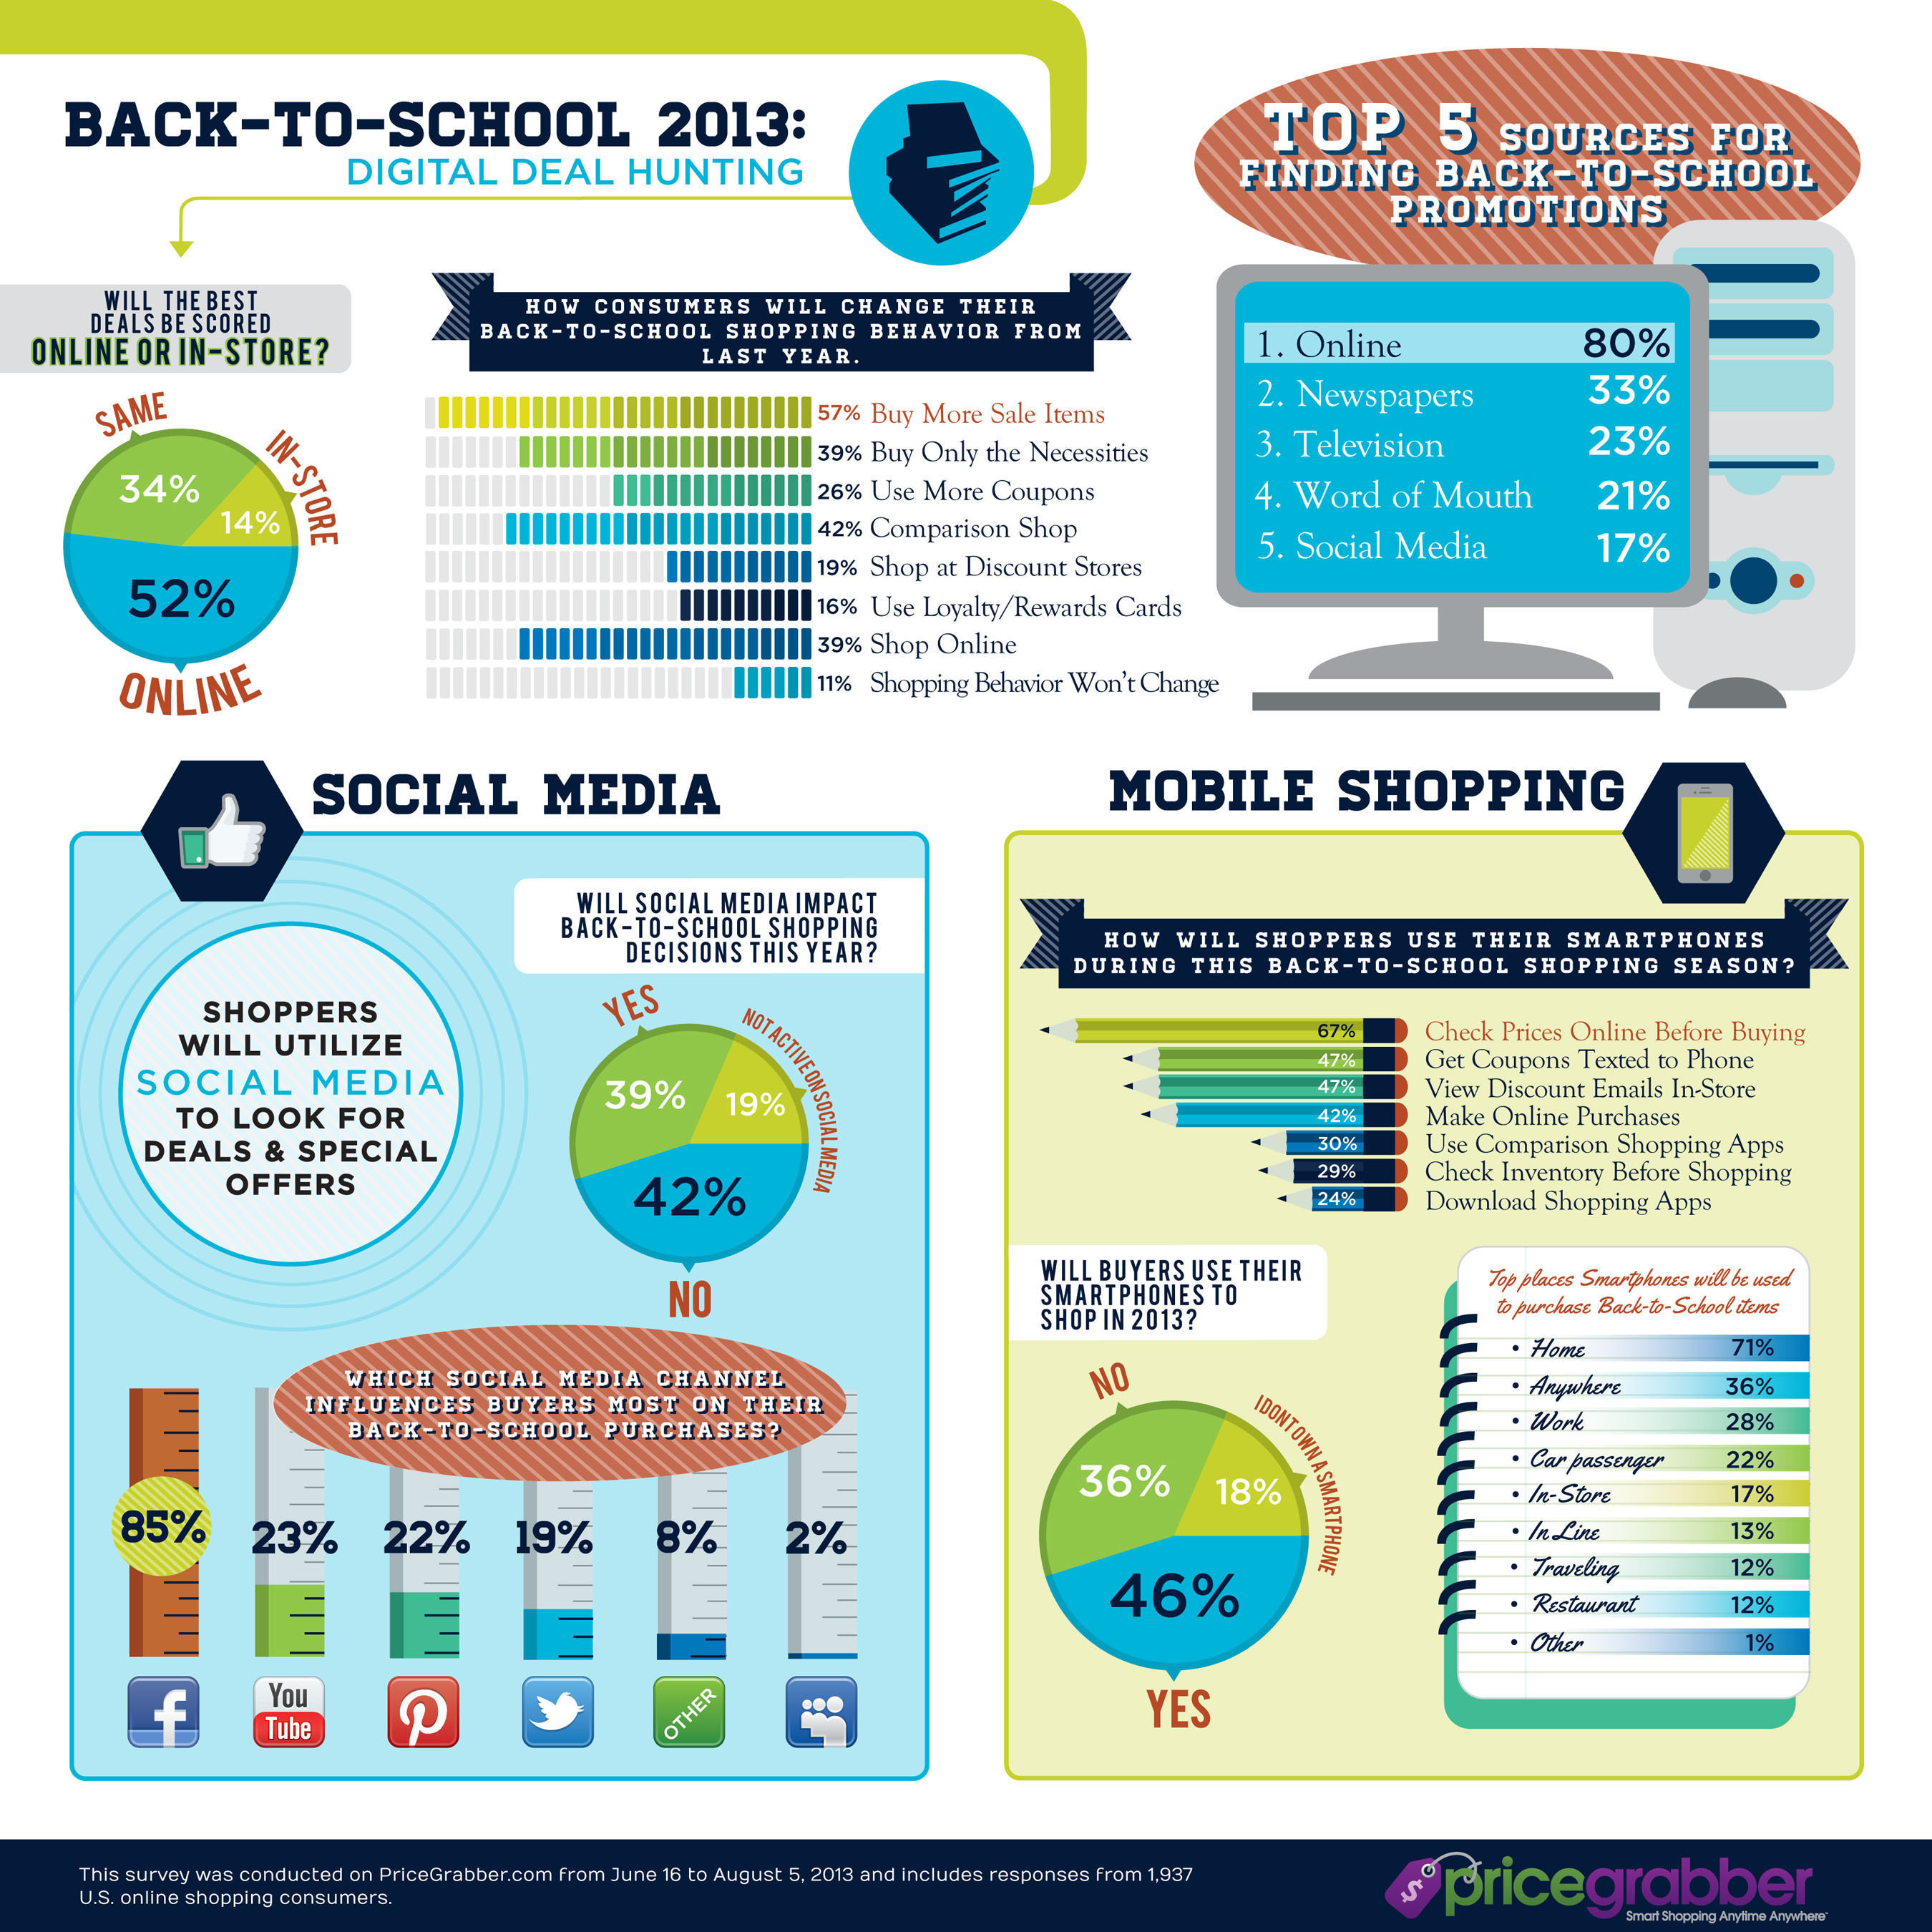 Back-to-School Shoppers Are Changing Their Strategies for Finding the Best Deals, According to